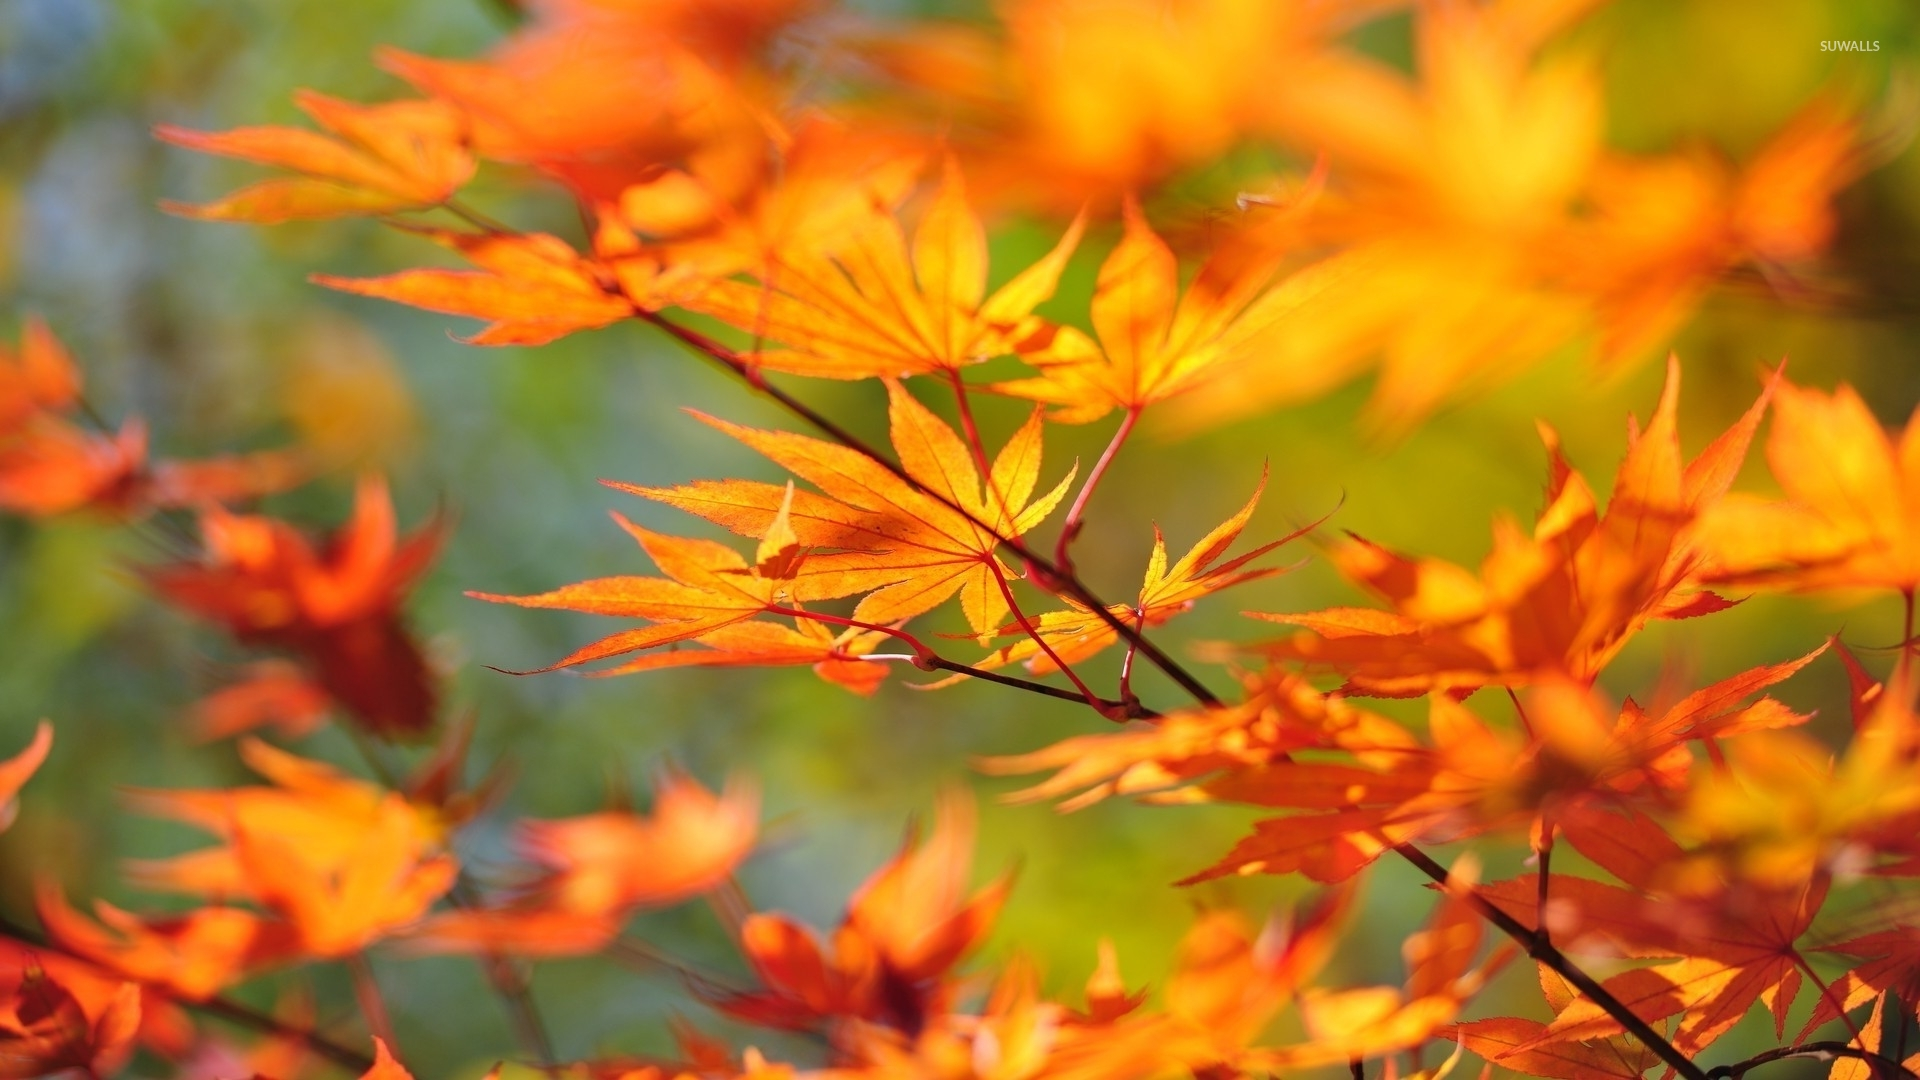 Autumn Leaves On A Branch Wallpaper Photography Wallpapers